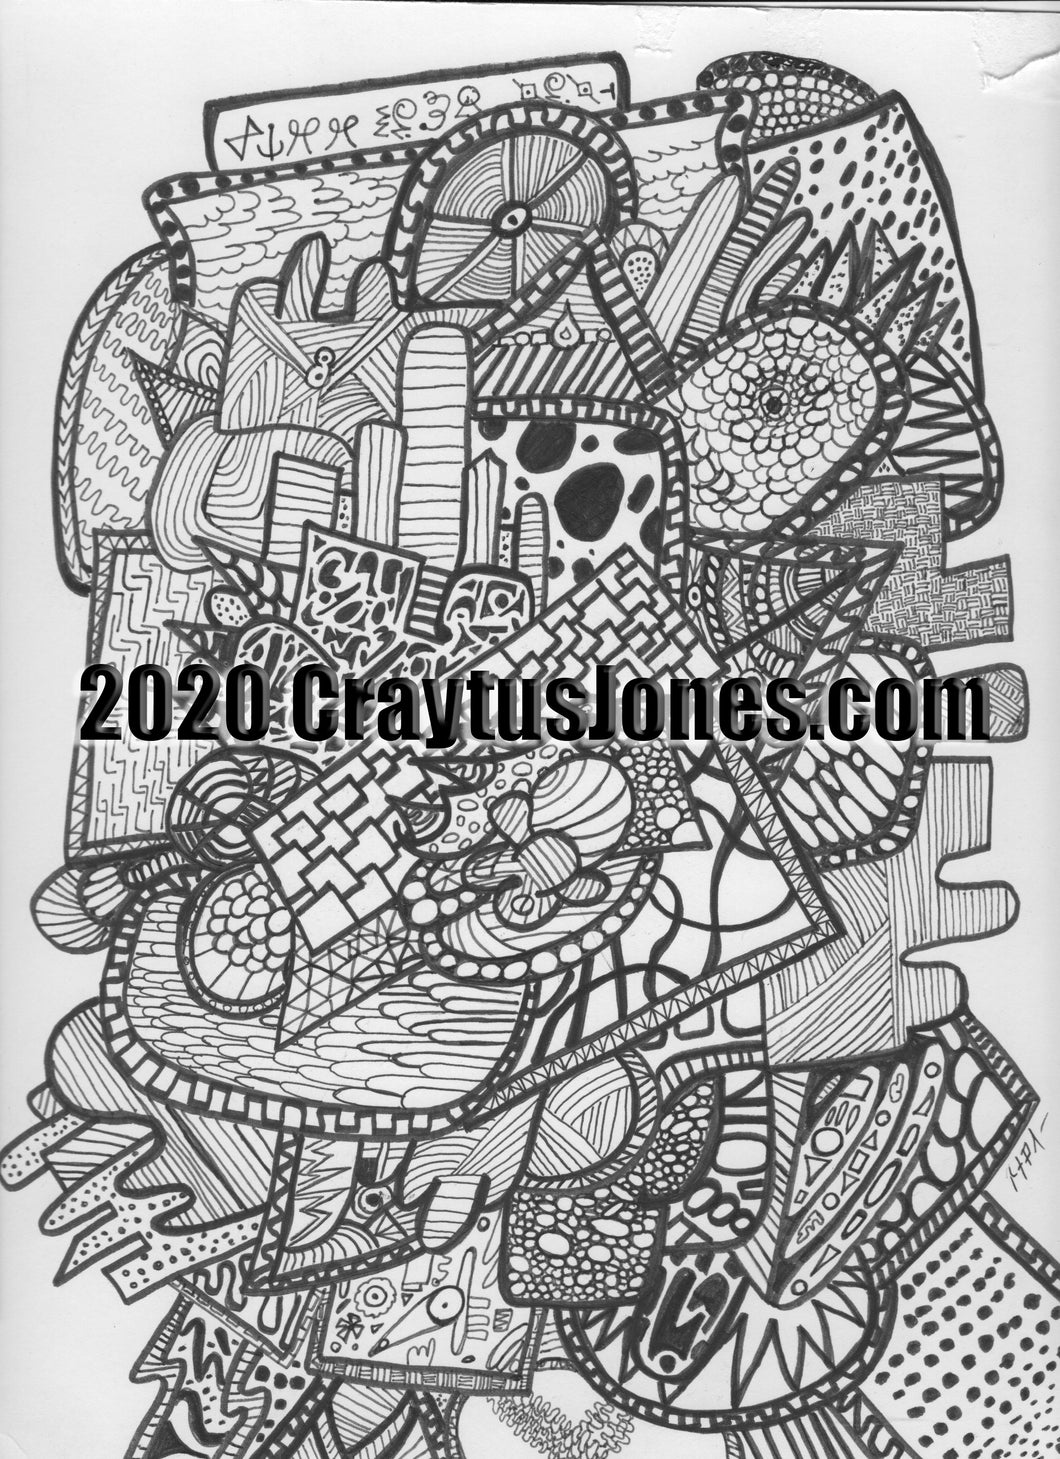 Craytus Jones Drawing Pen and Ink Abstract quarantine art organic texture graphic folk wall decor Original artwork